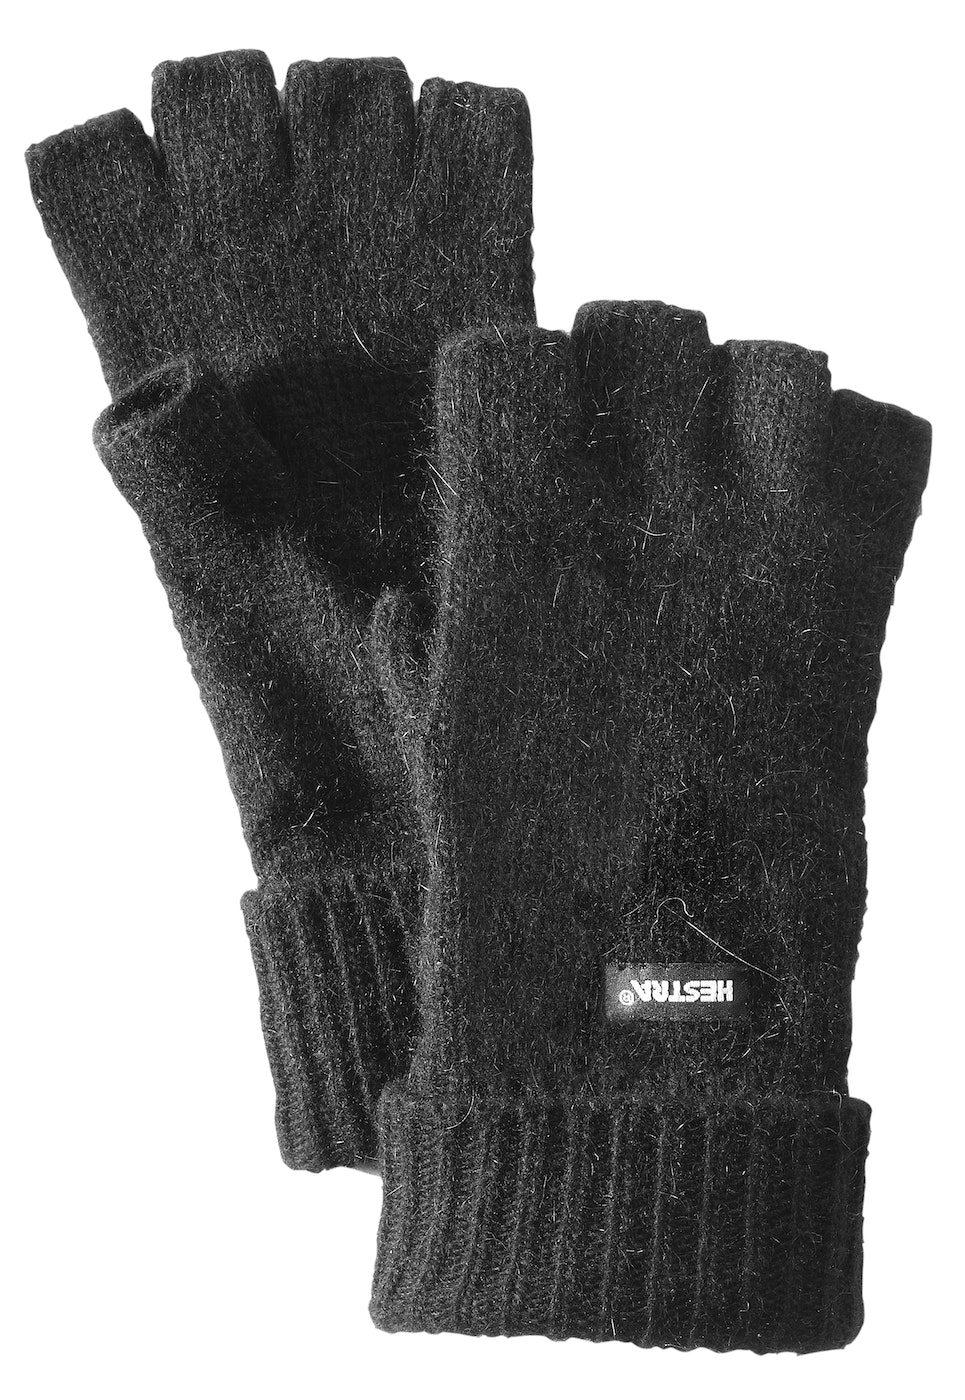 Product image for 60512 Pancho Half Finger